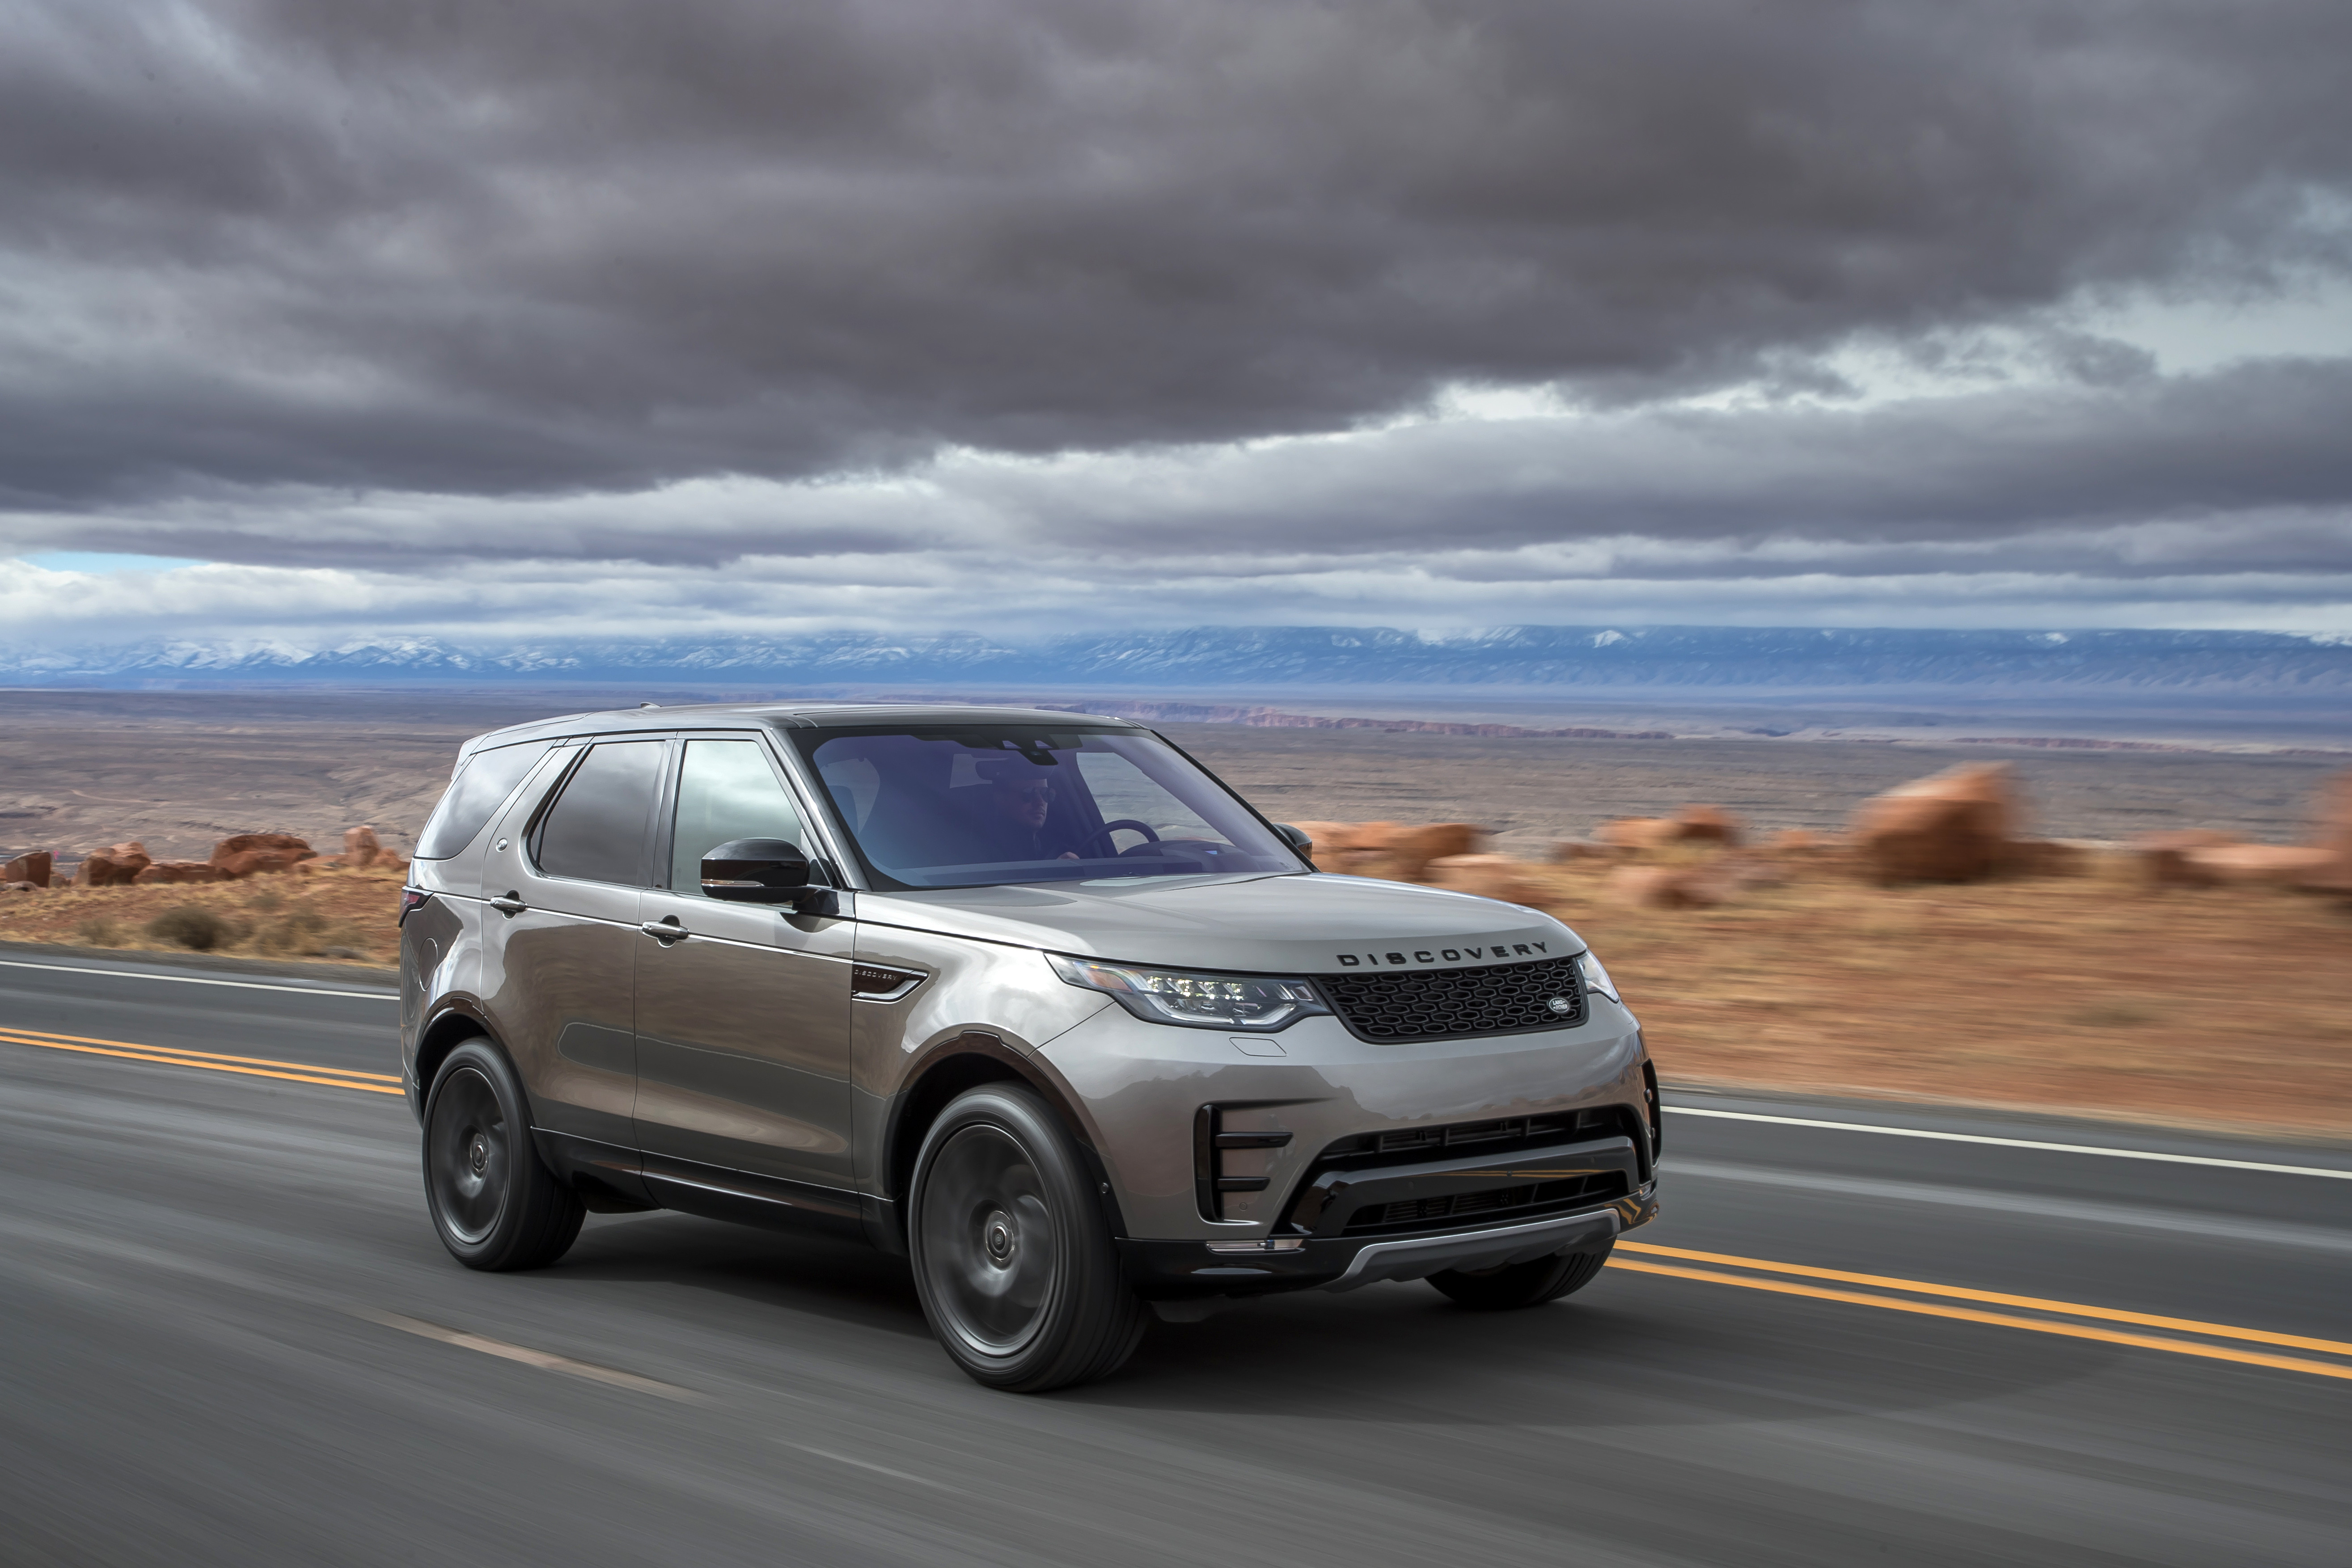 Pale gold Land Rover Discovery driving at speed side on to you